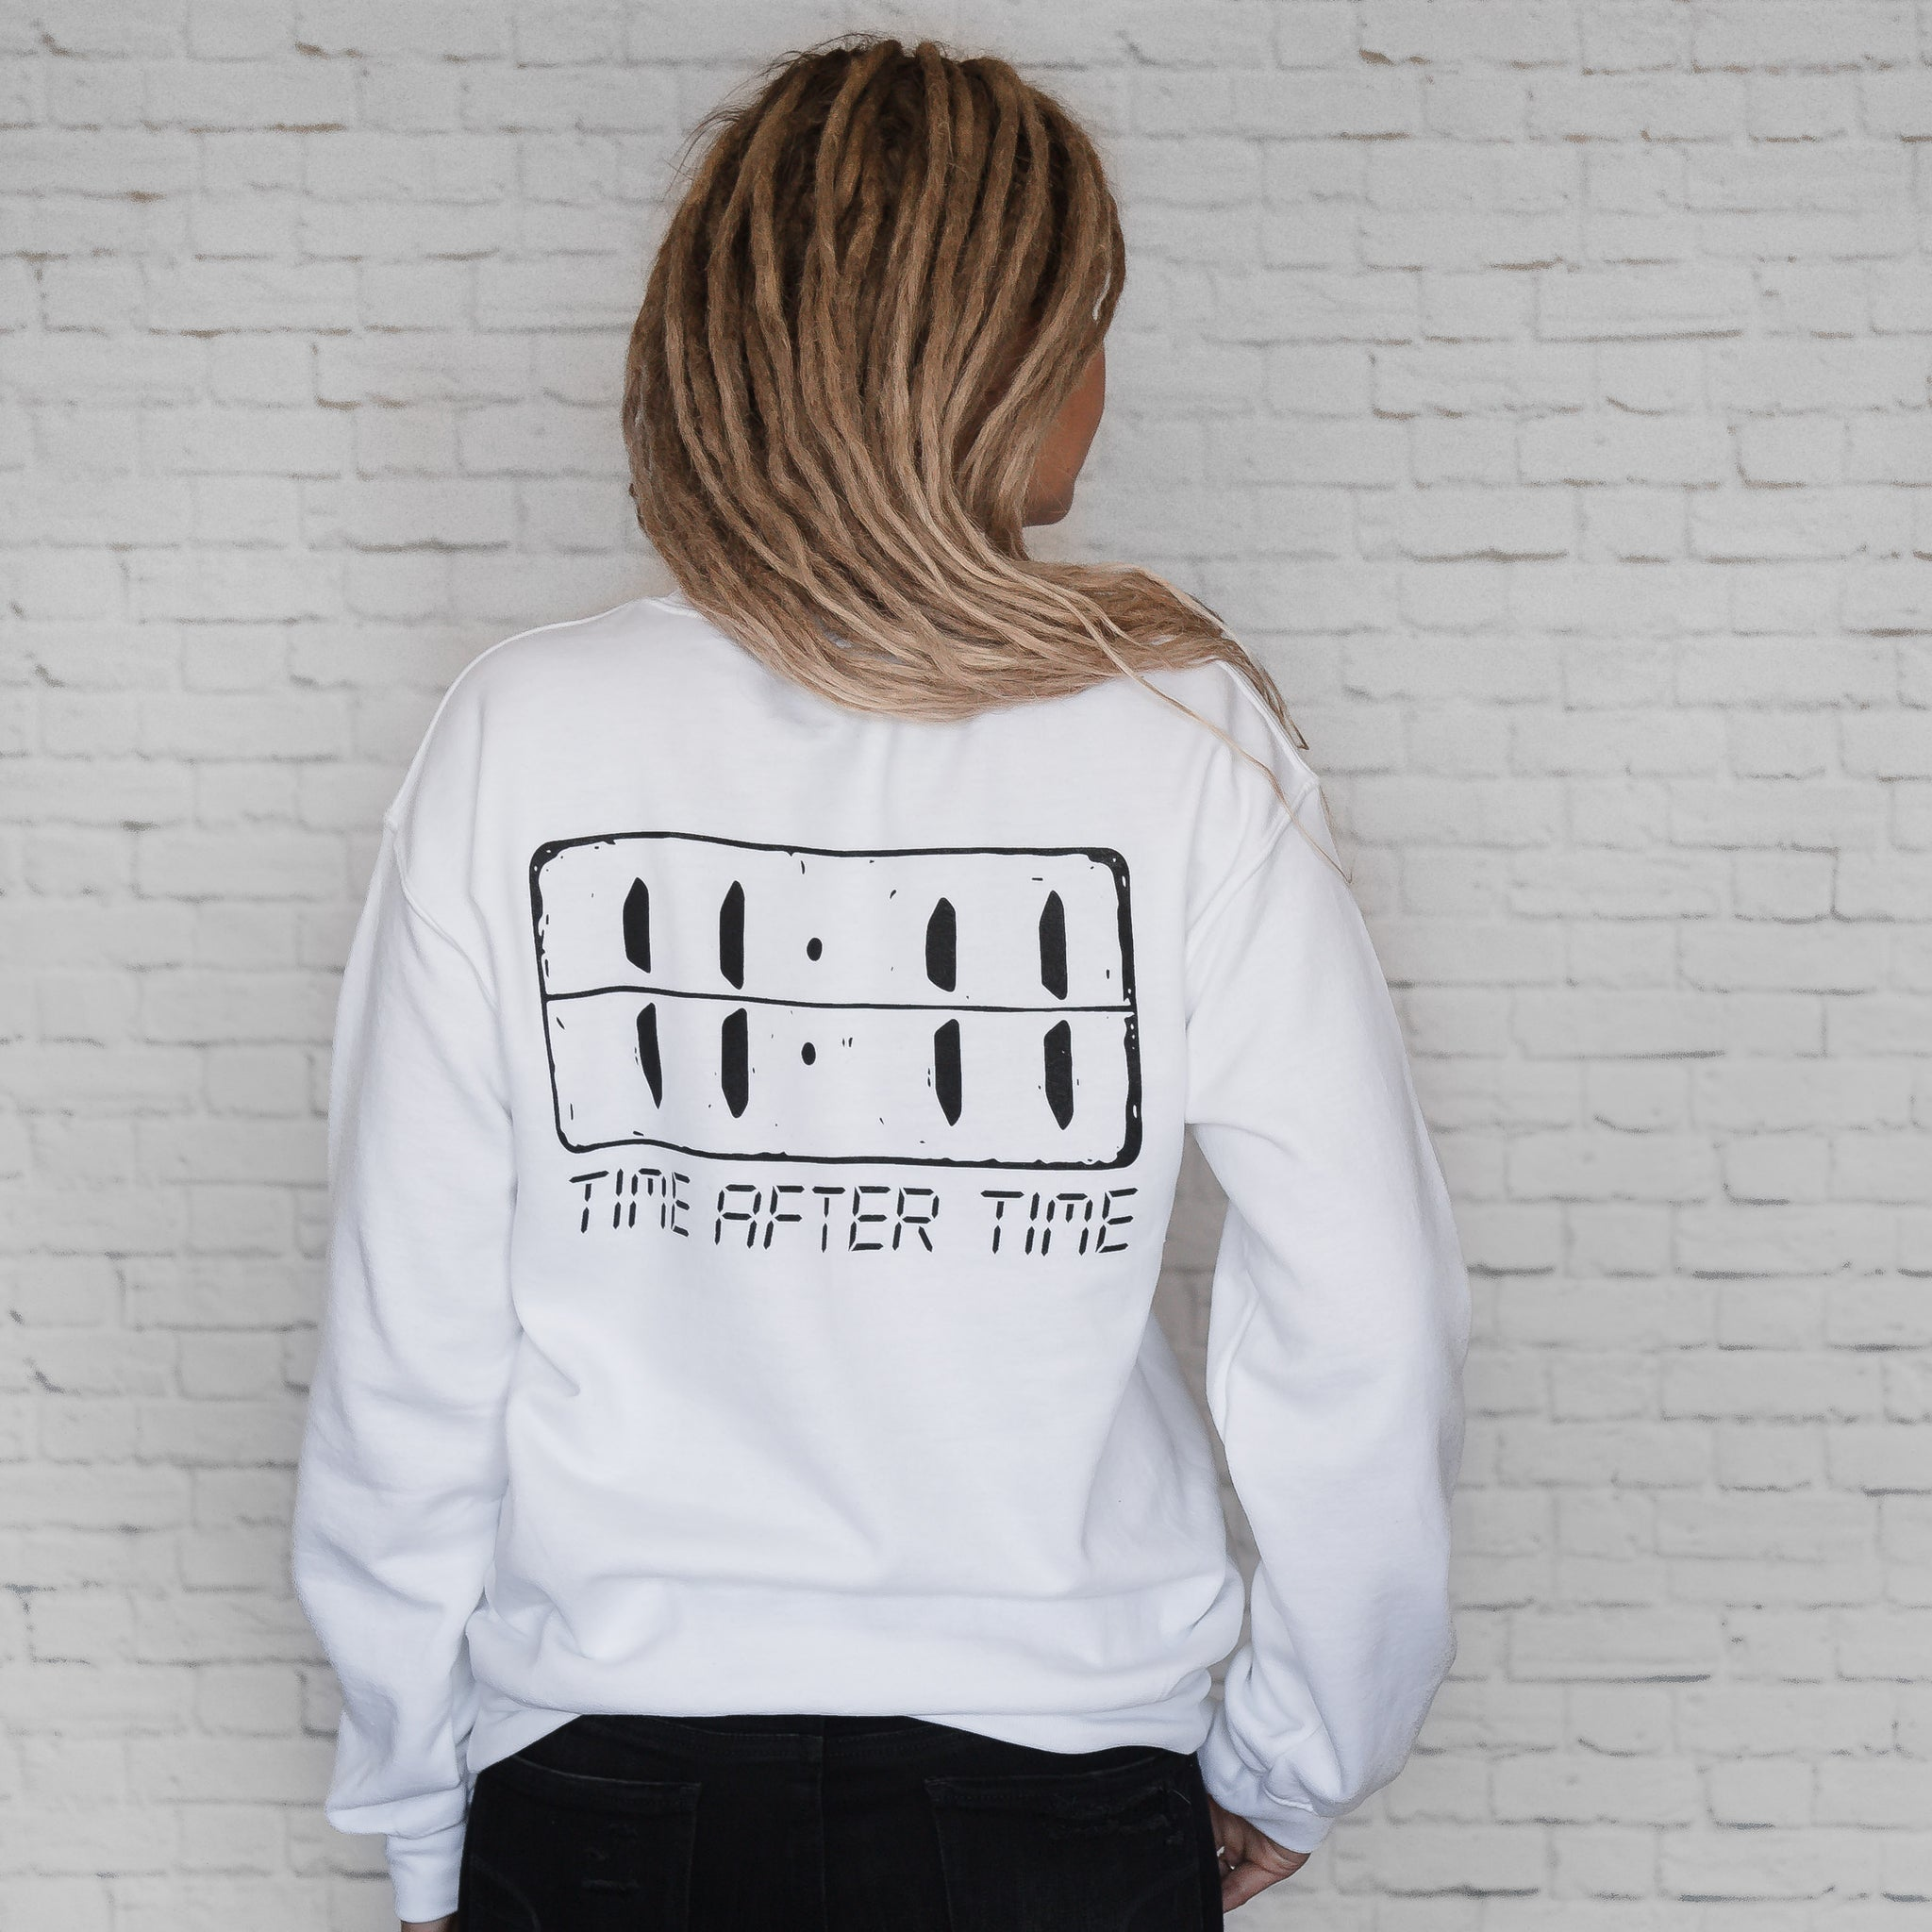 Time After Time Sweatshirt (Unisex)